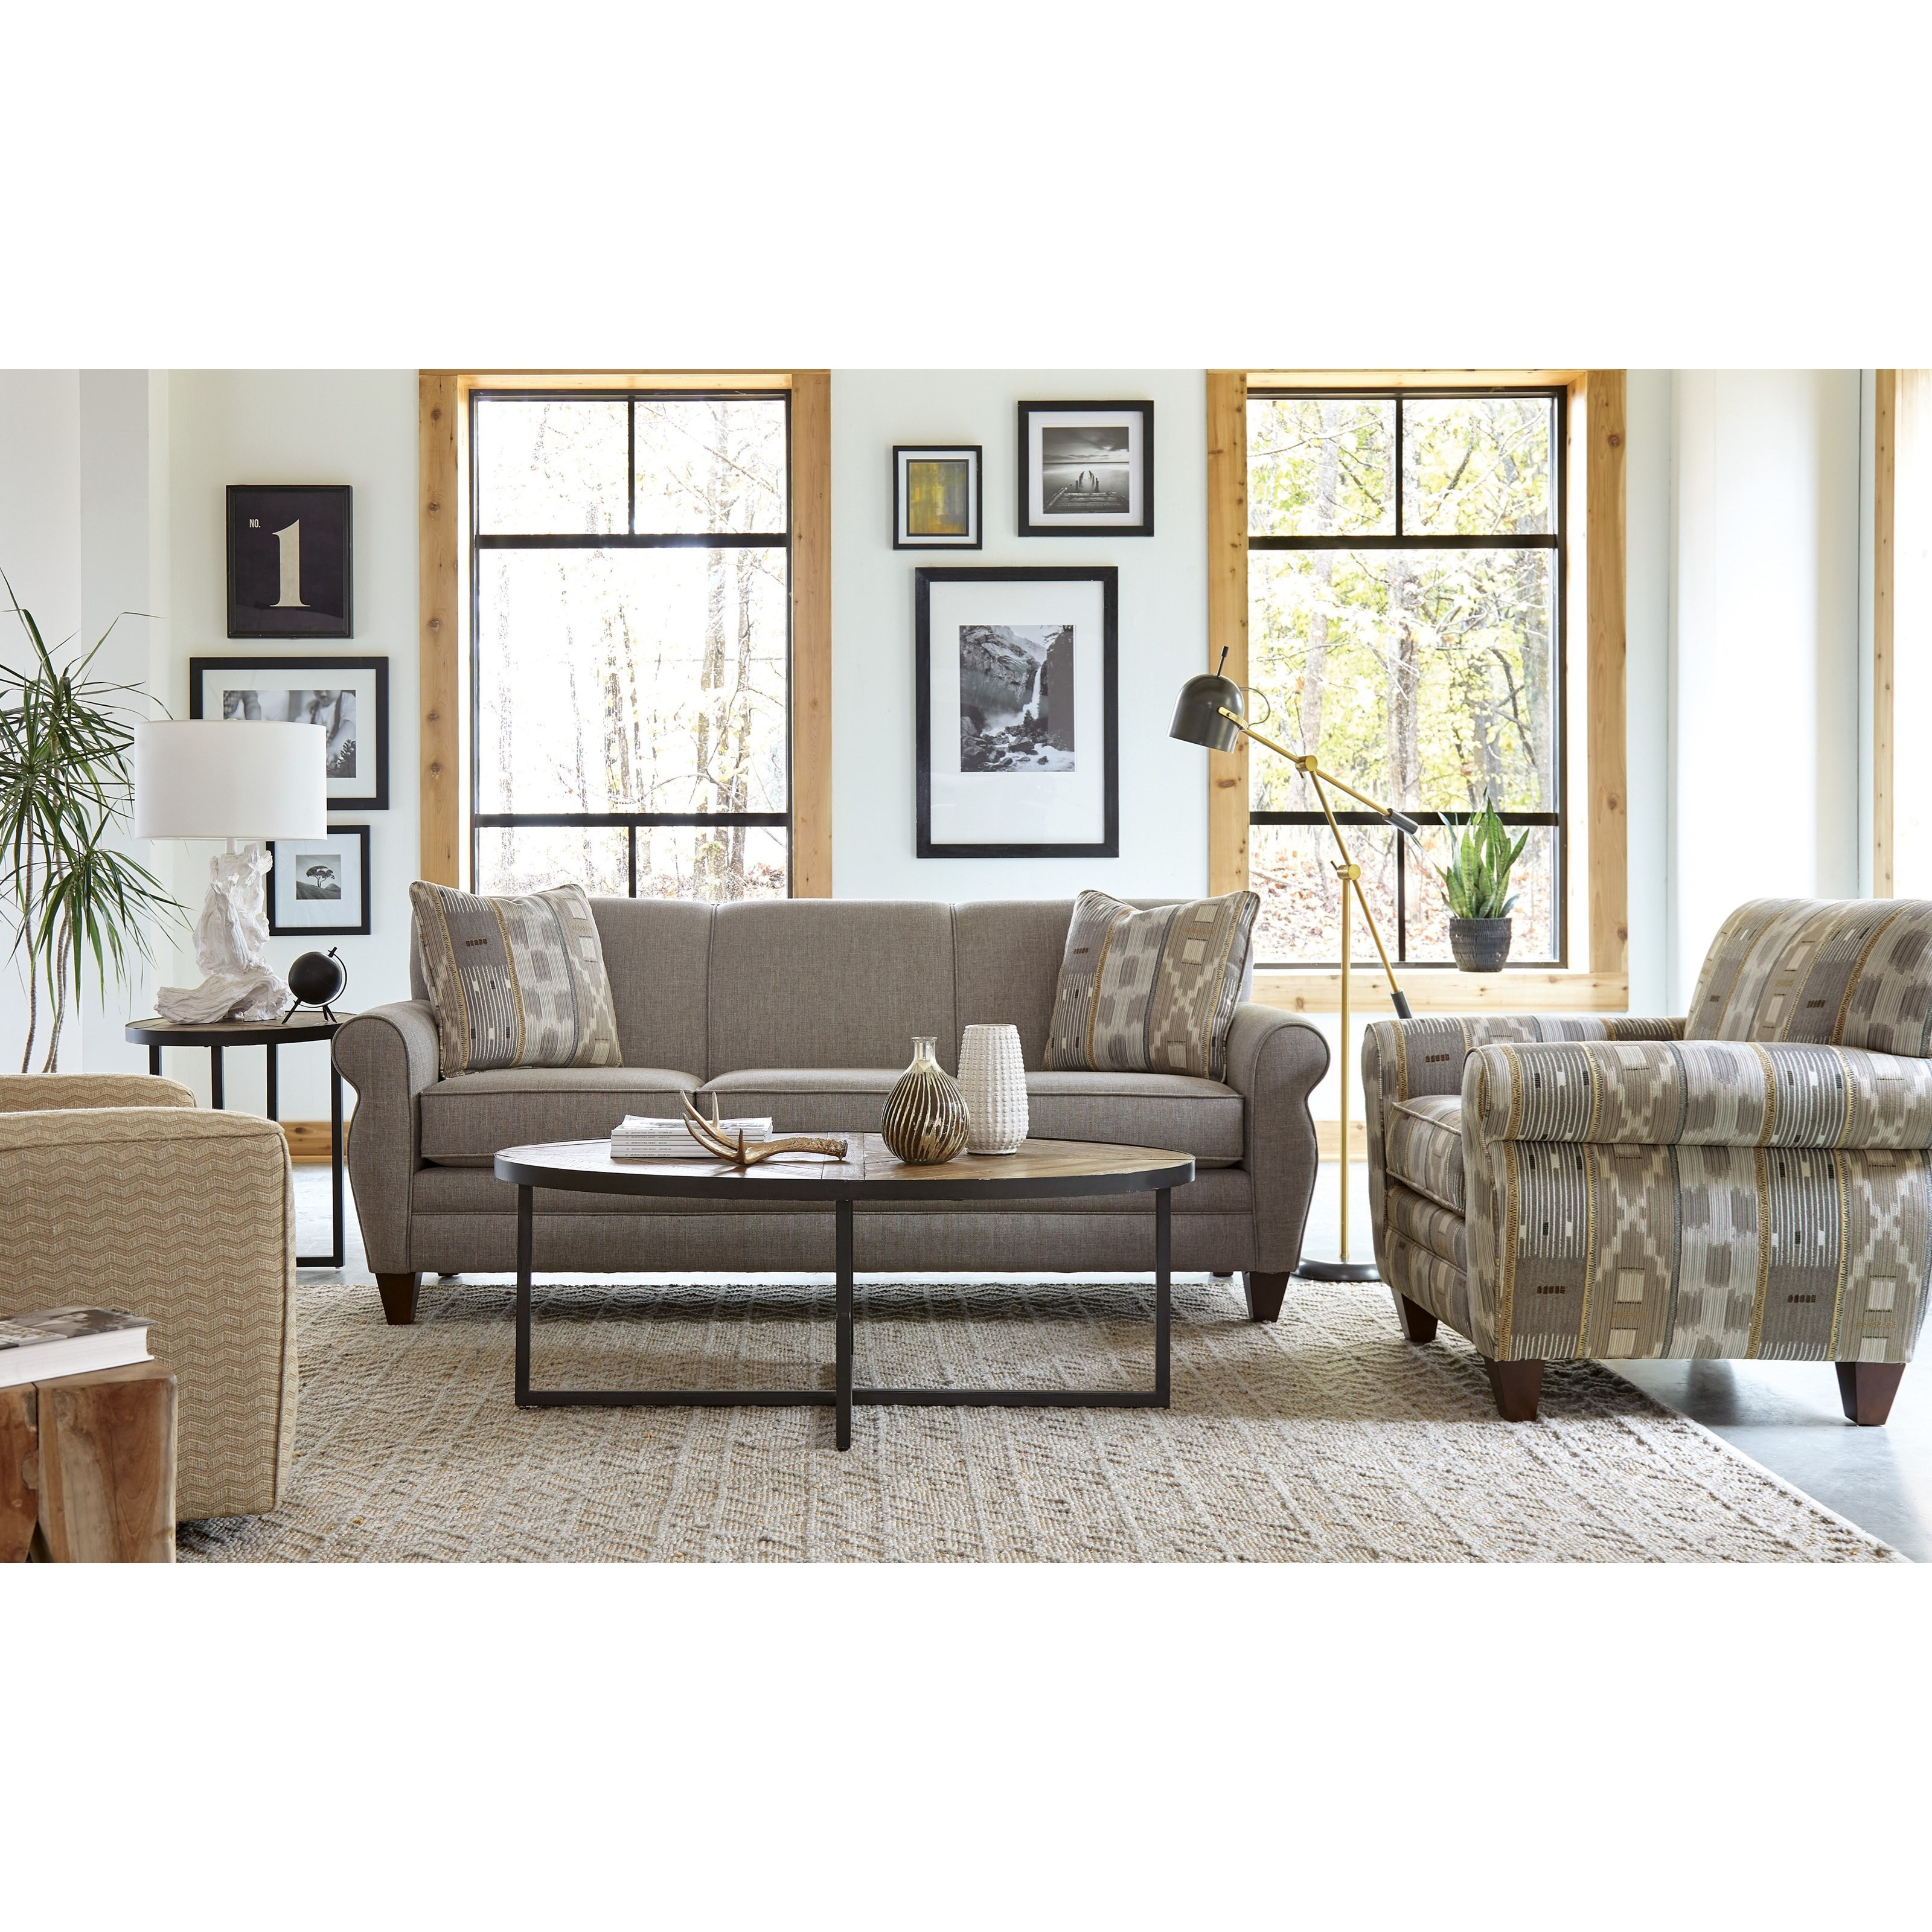 7388 Living Room Group by Craftmaster at Lagniappe Home Store